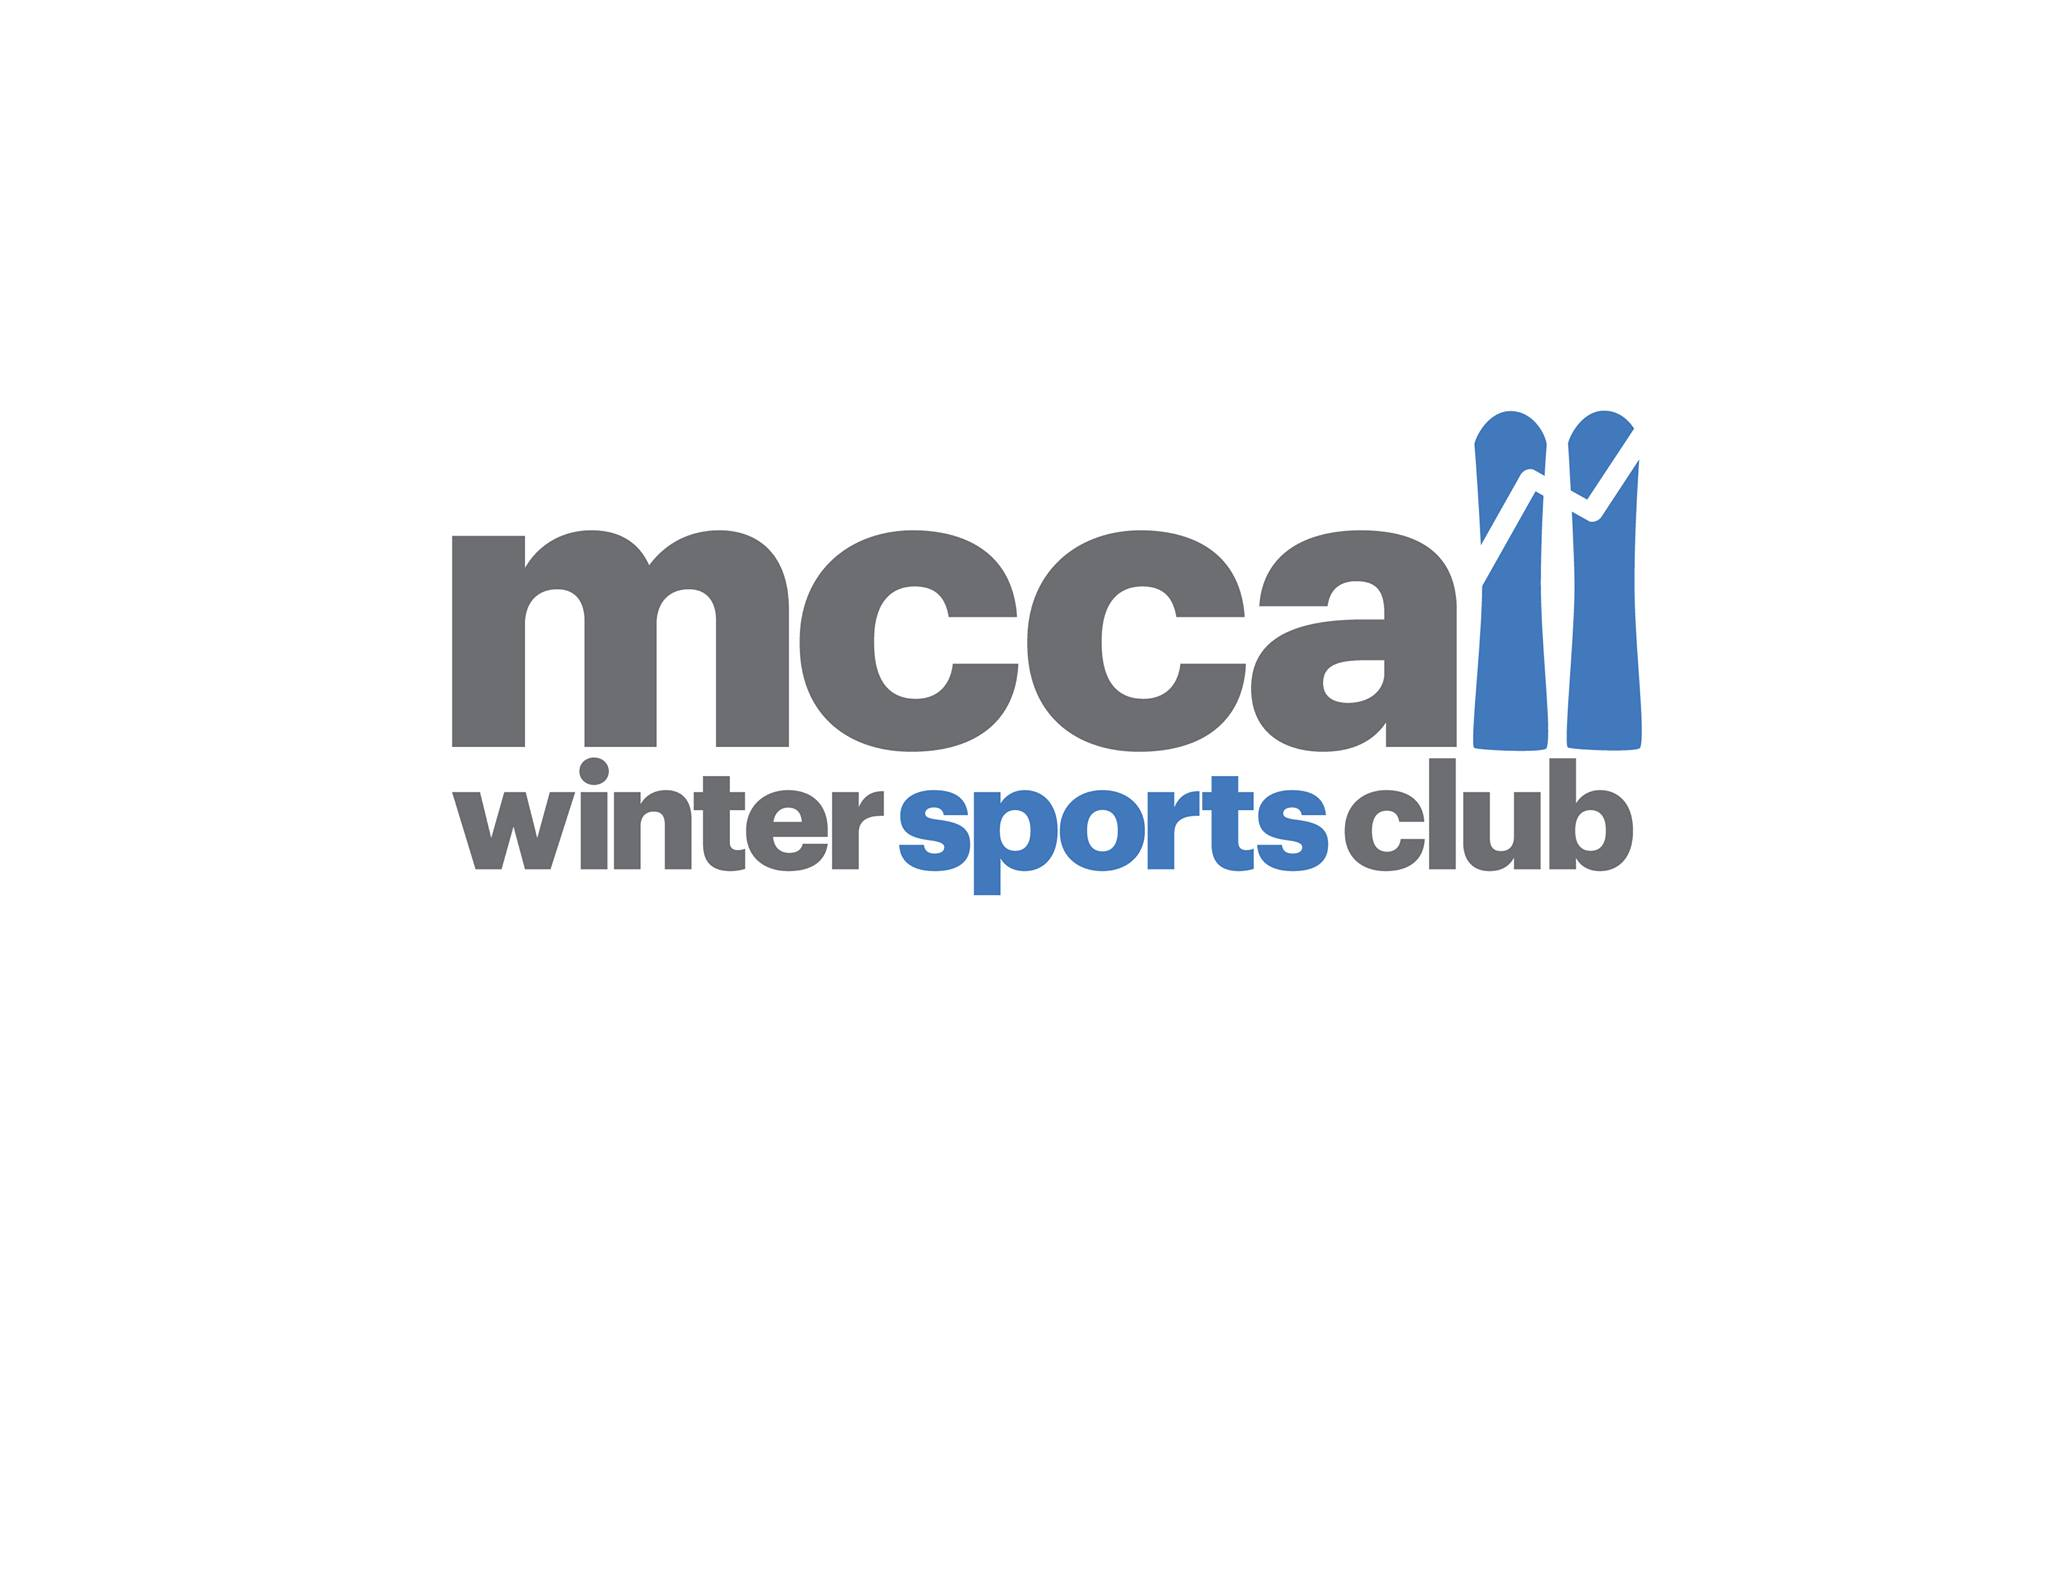 McCall Winter Sports Club